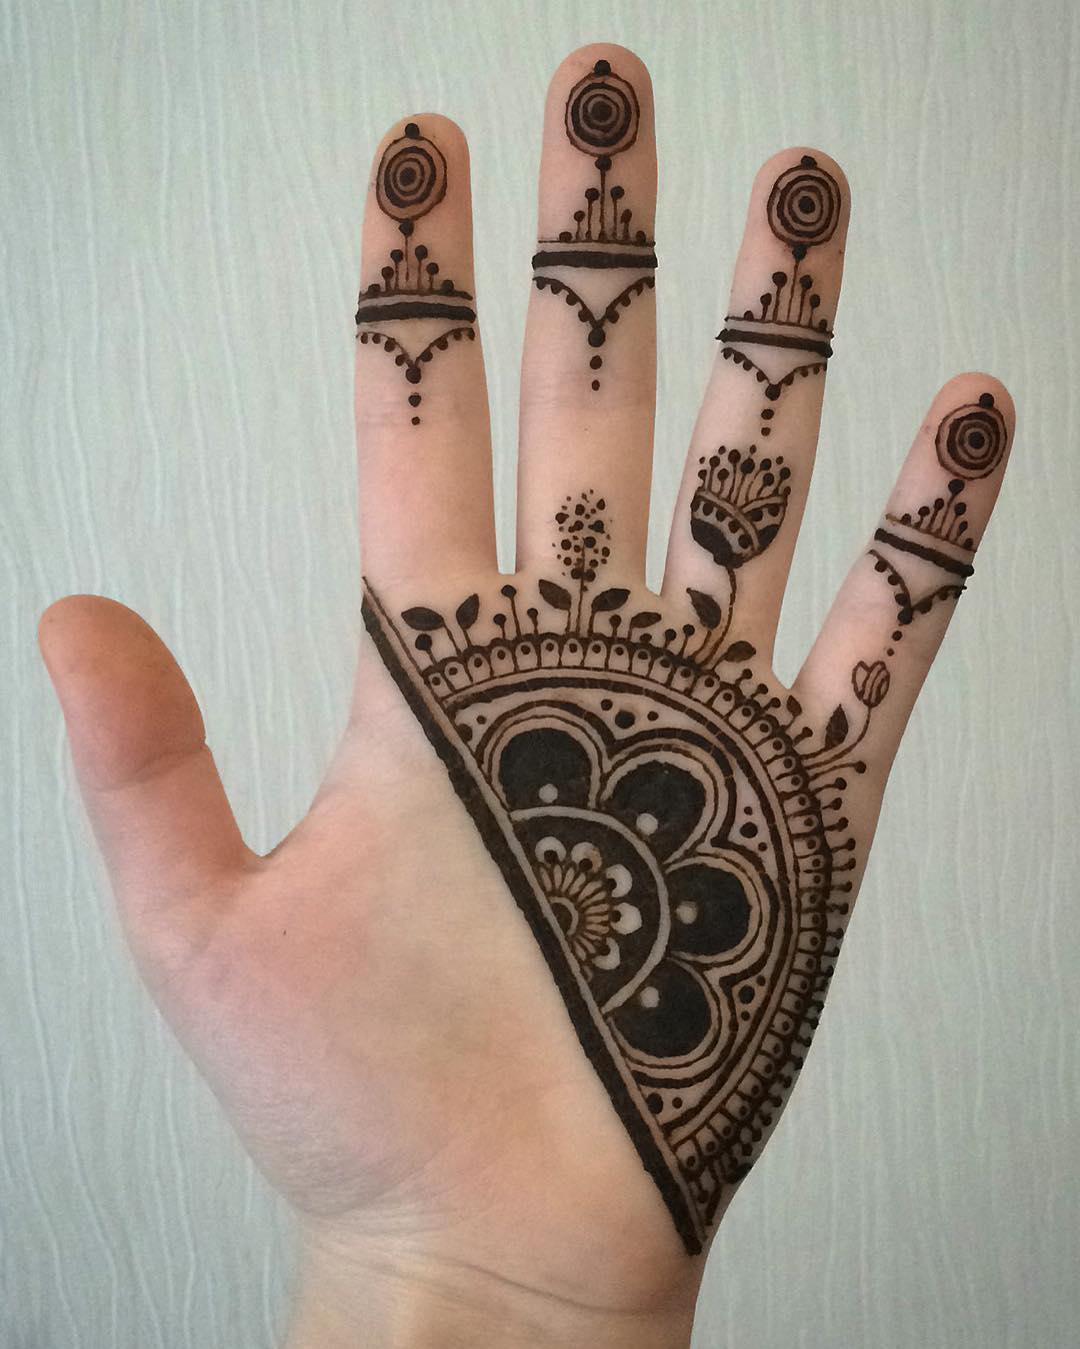 65 festive mehndi designs celebrate life and love with henna tattoos. Black Bedroom Furniture Sets. Home Design Ideas